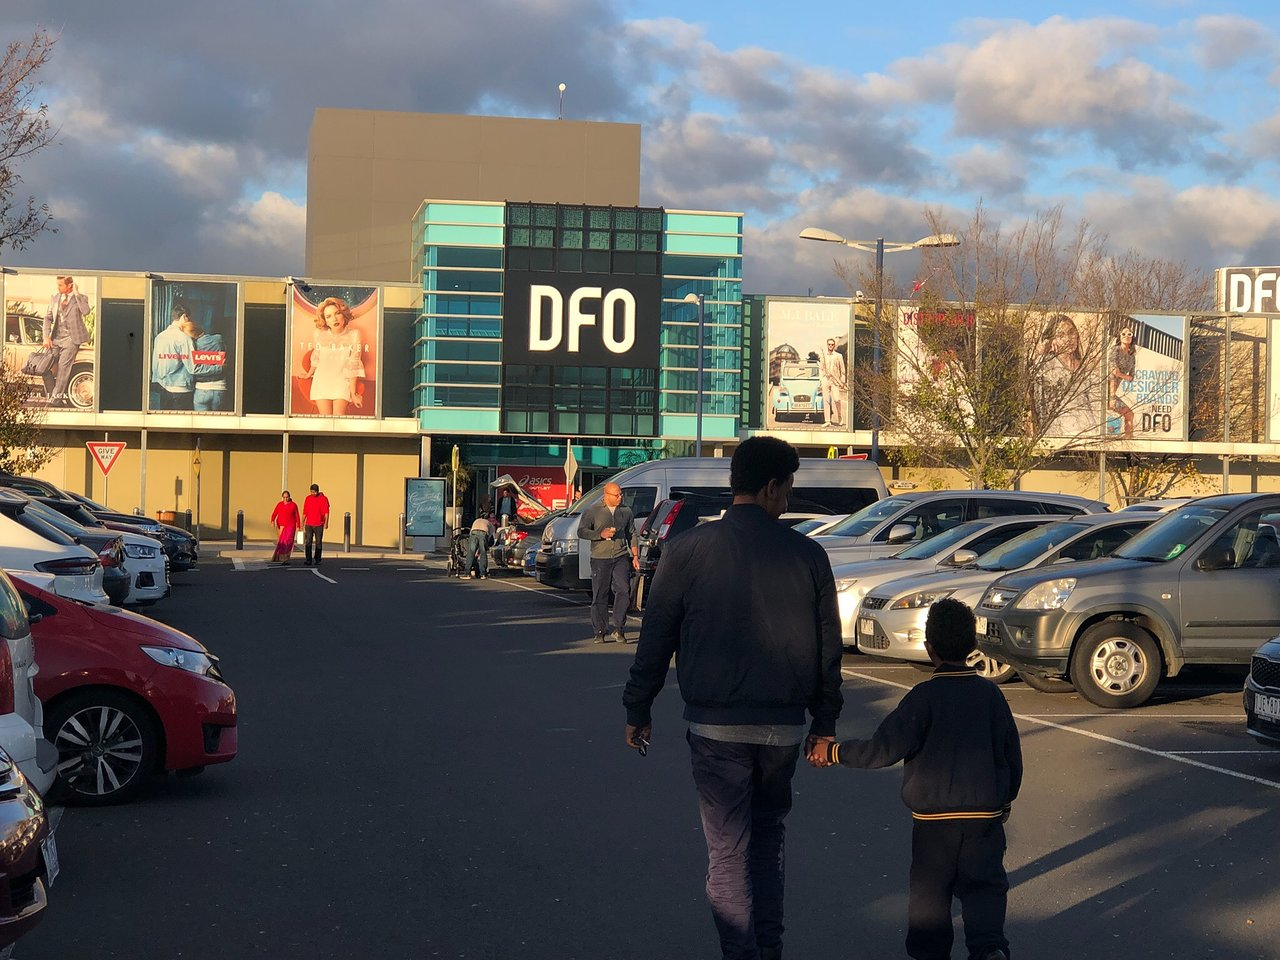 Dfo Direct Factory Outlet Essendon 2020 All You Need To Know Before You Go With Photos Tripadvisor Webster groves newest sushi station restaurant located in the historic district known as old the sushi station was recently named one of the top ten places in st. dfo direct factory outlet essendon